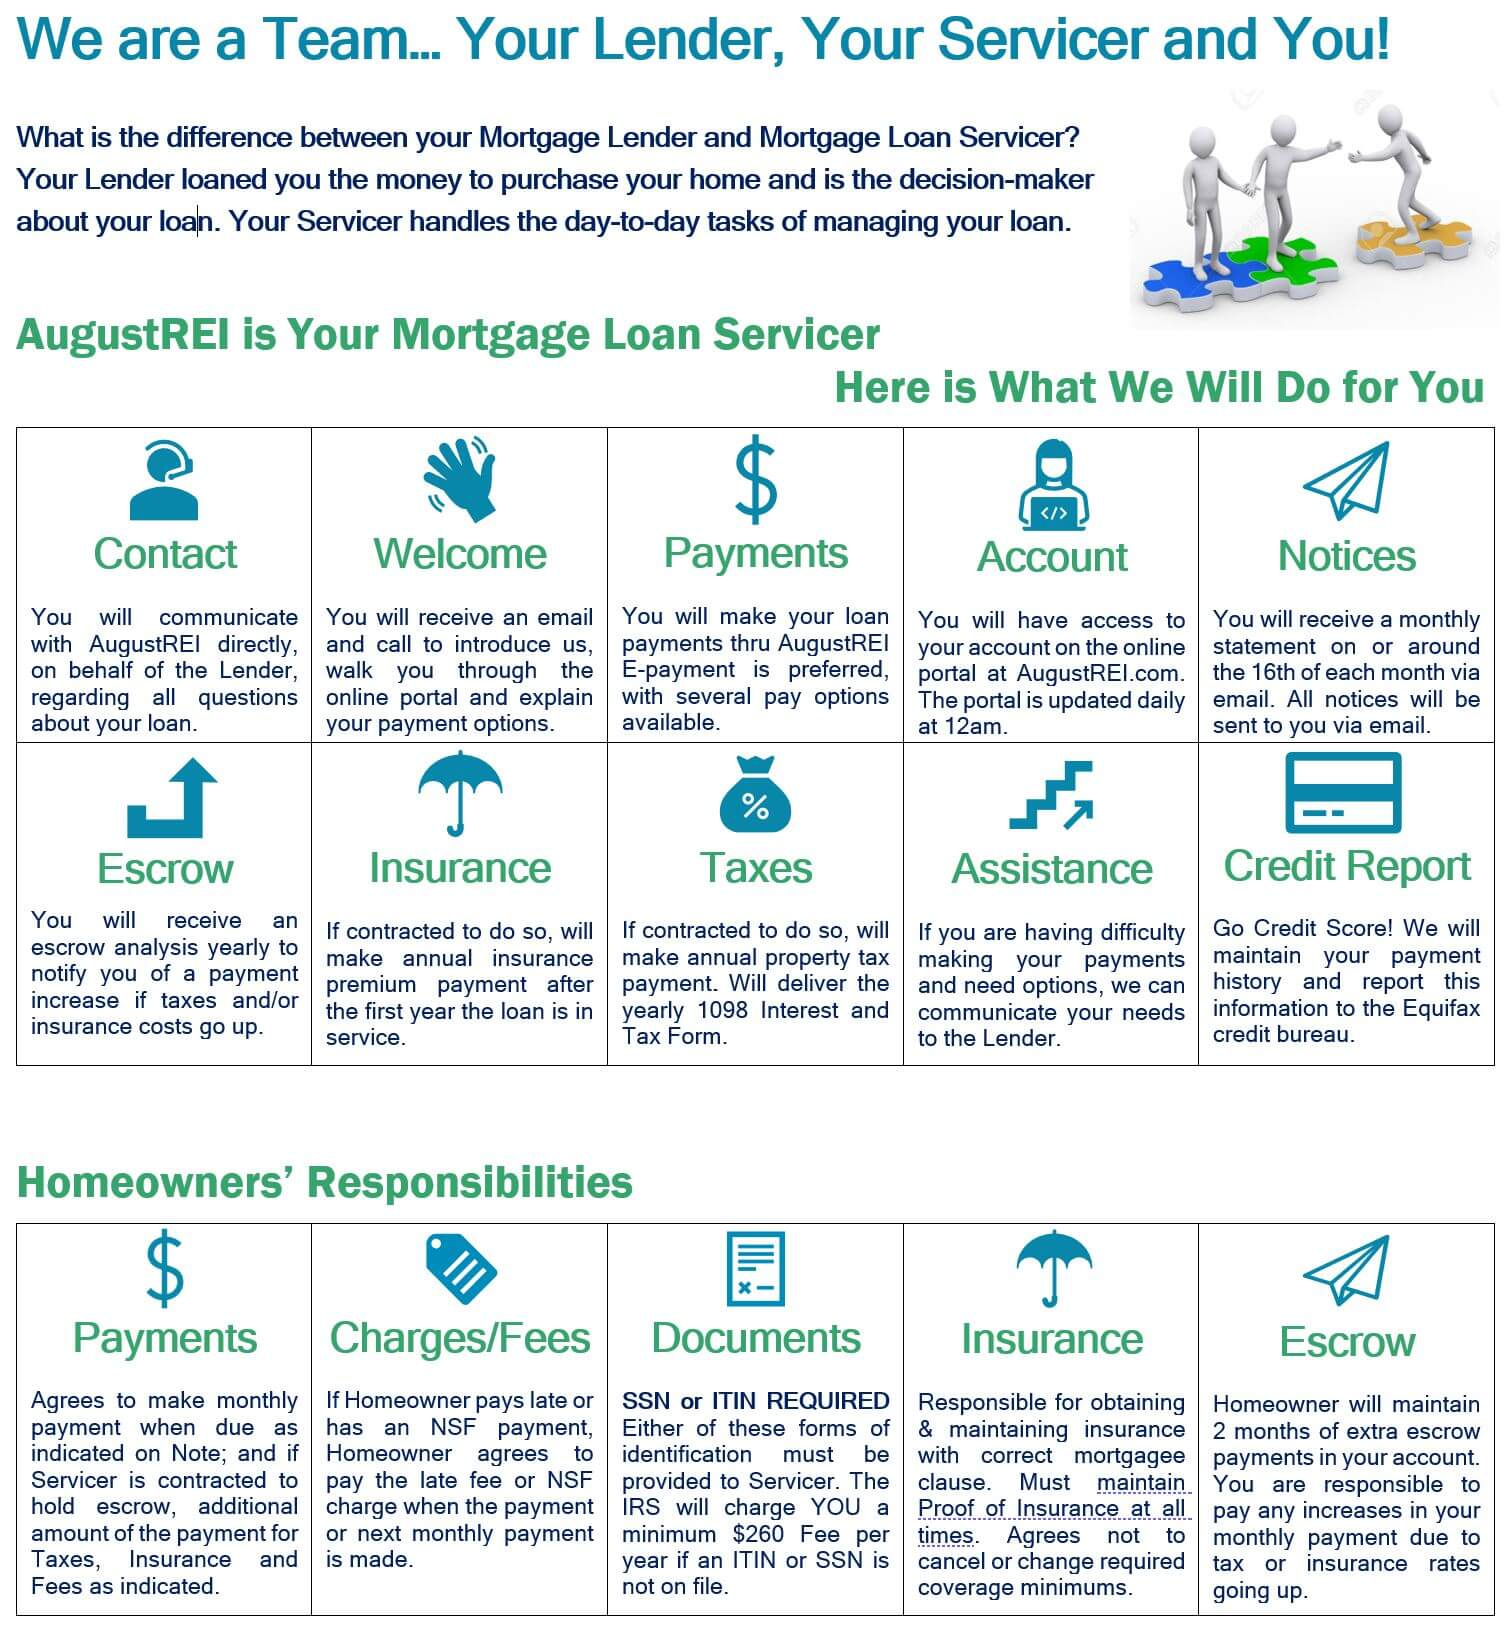 We are a Team! Your Lender, Your Servicer and You!